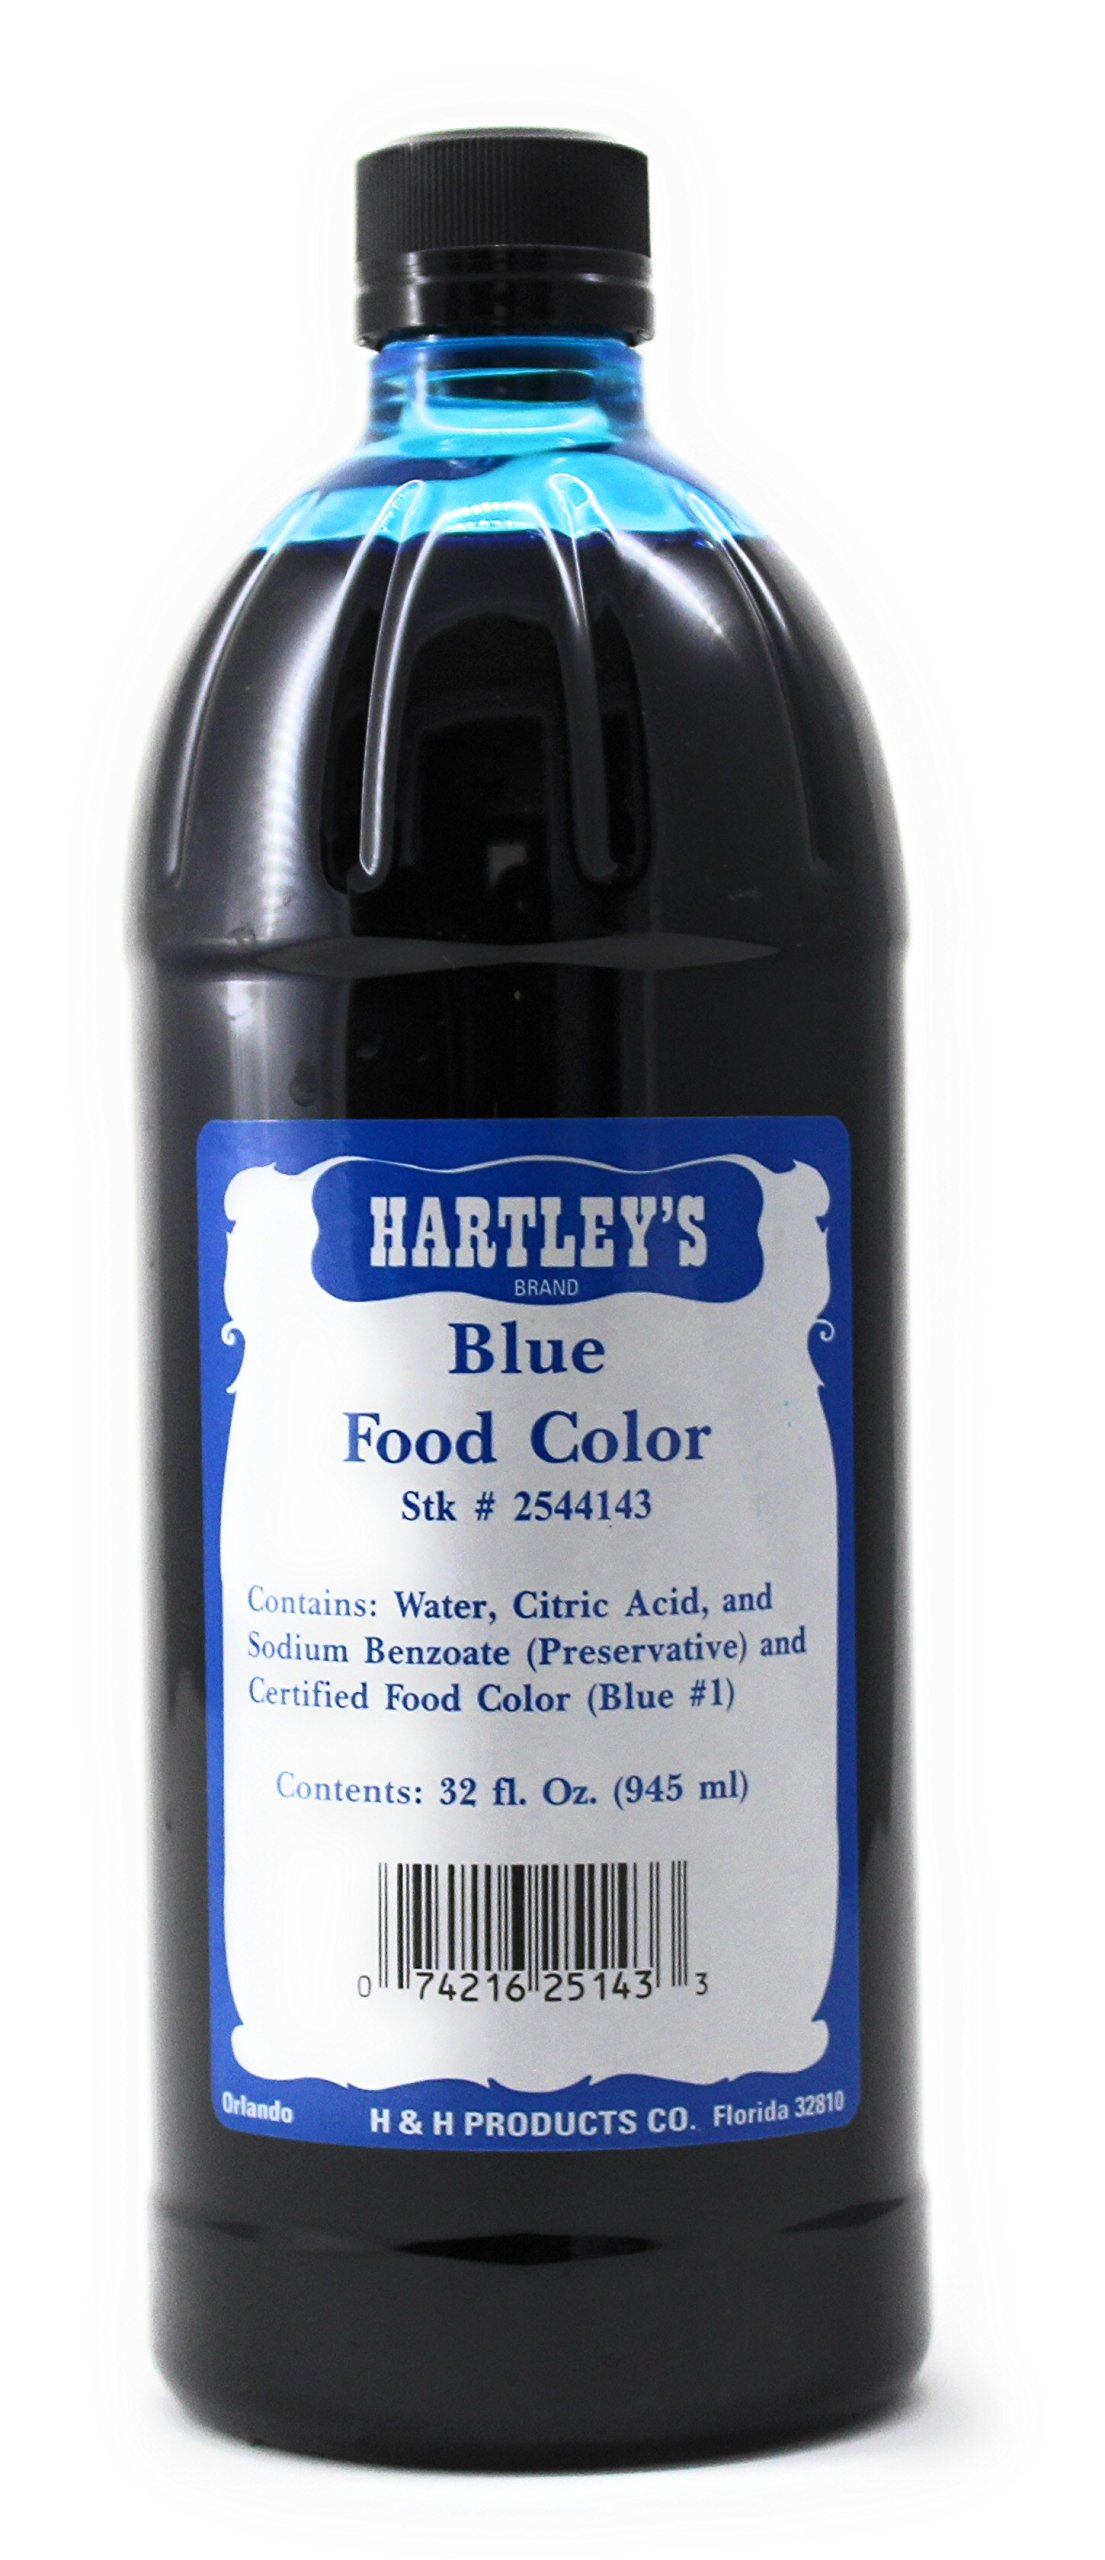 Hartleys Blue Food Coloring Commercial Grade Professional Kitchen Blue Culinary Liquid Color 32 Oz ✡ OU Kosher